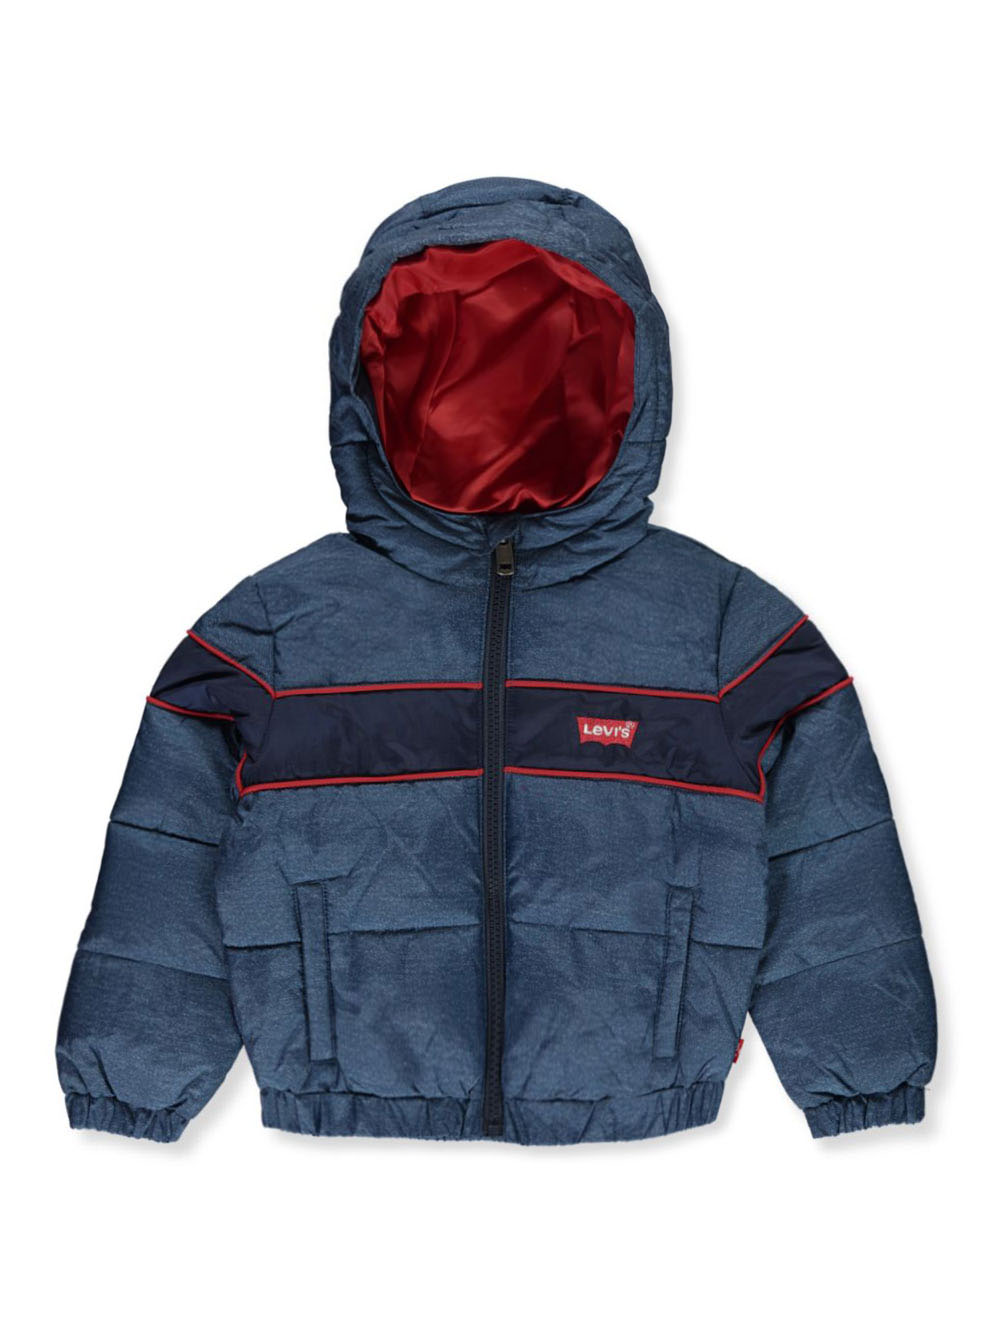 Levi's Jackets and Coats